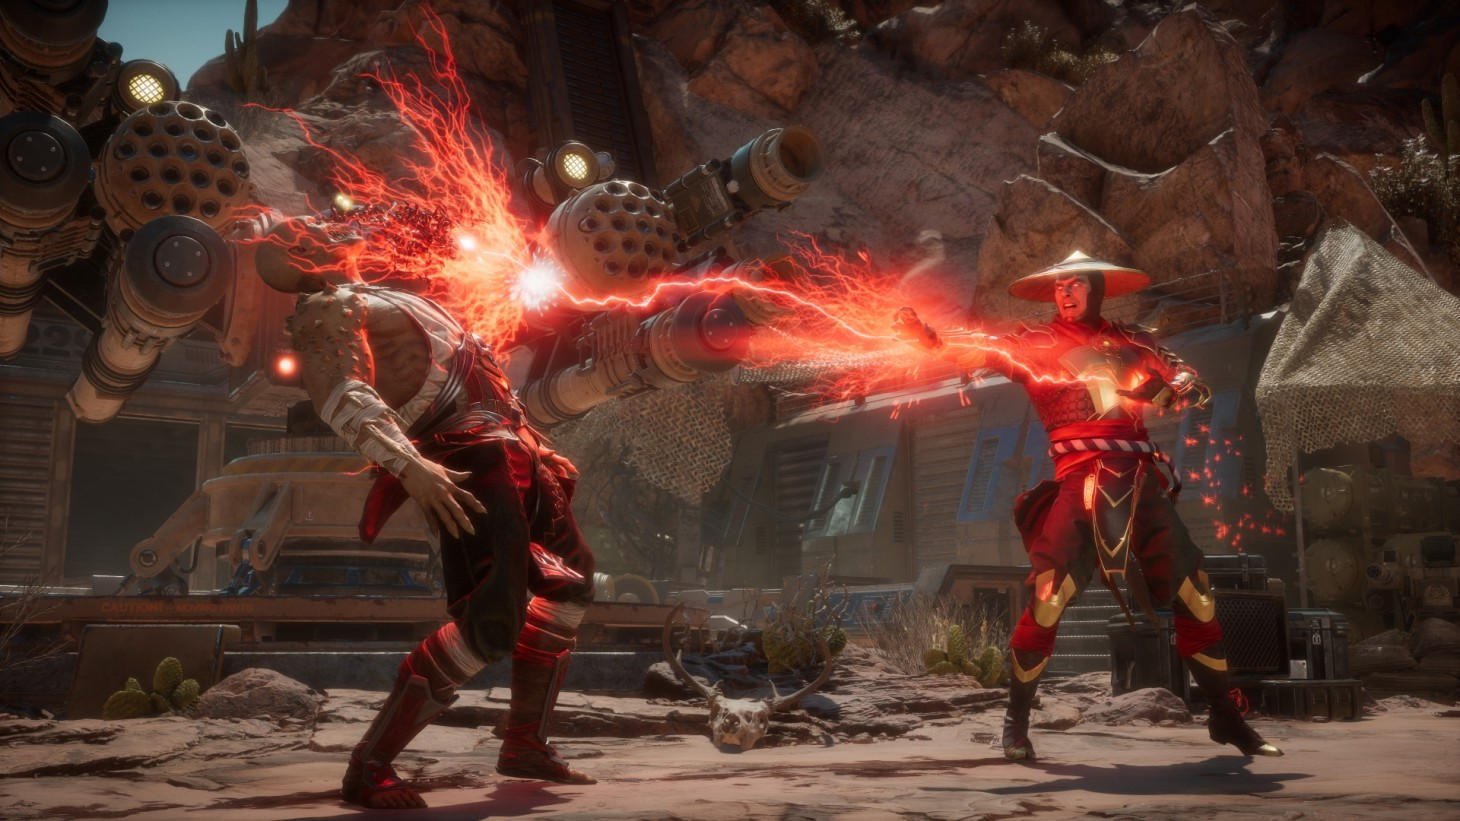 The Full Mortal Kombat 11 Roster So Far - Game Informer